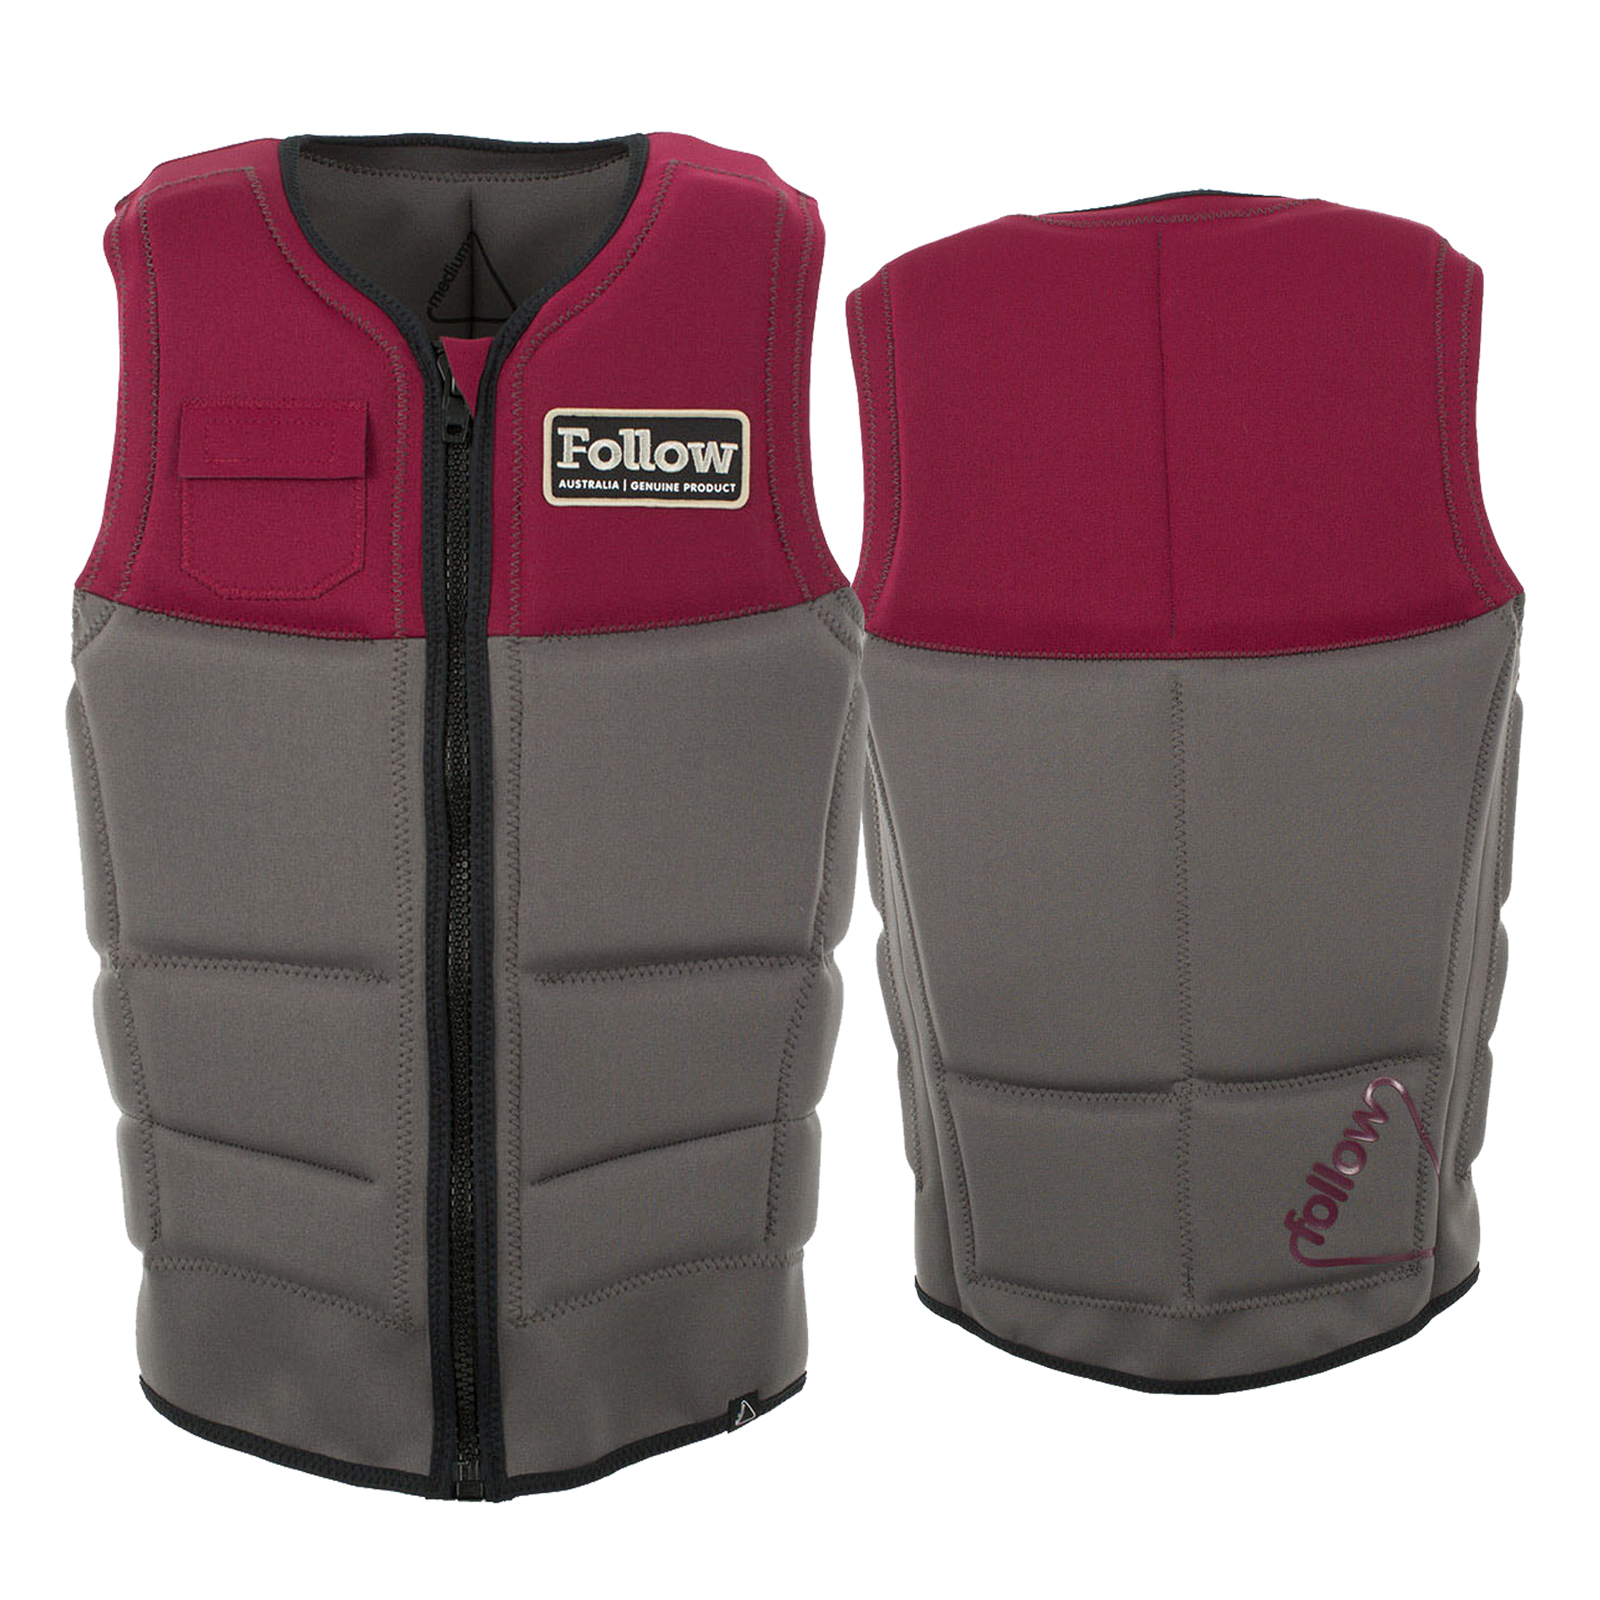 STOW COOK CE IMPACT VEST MAROON/GREY FOLLOW 2017